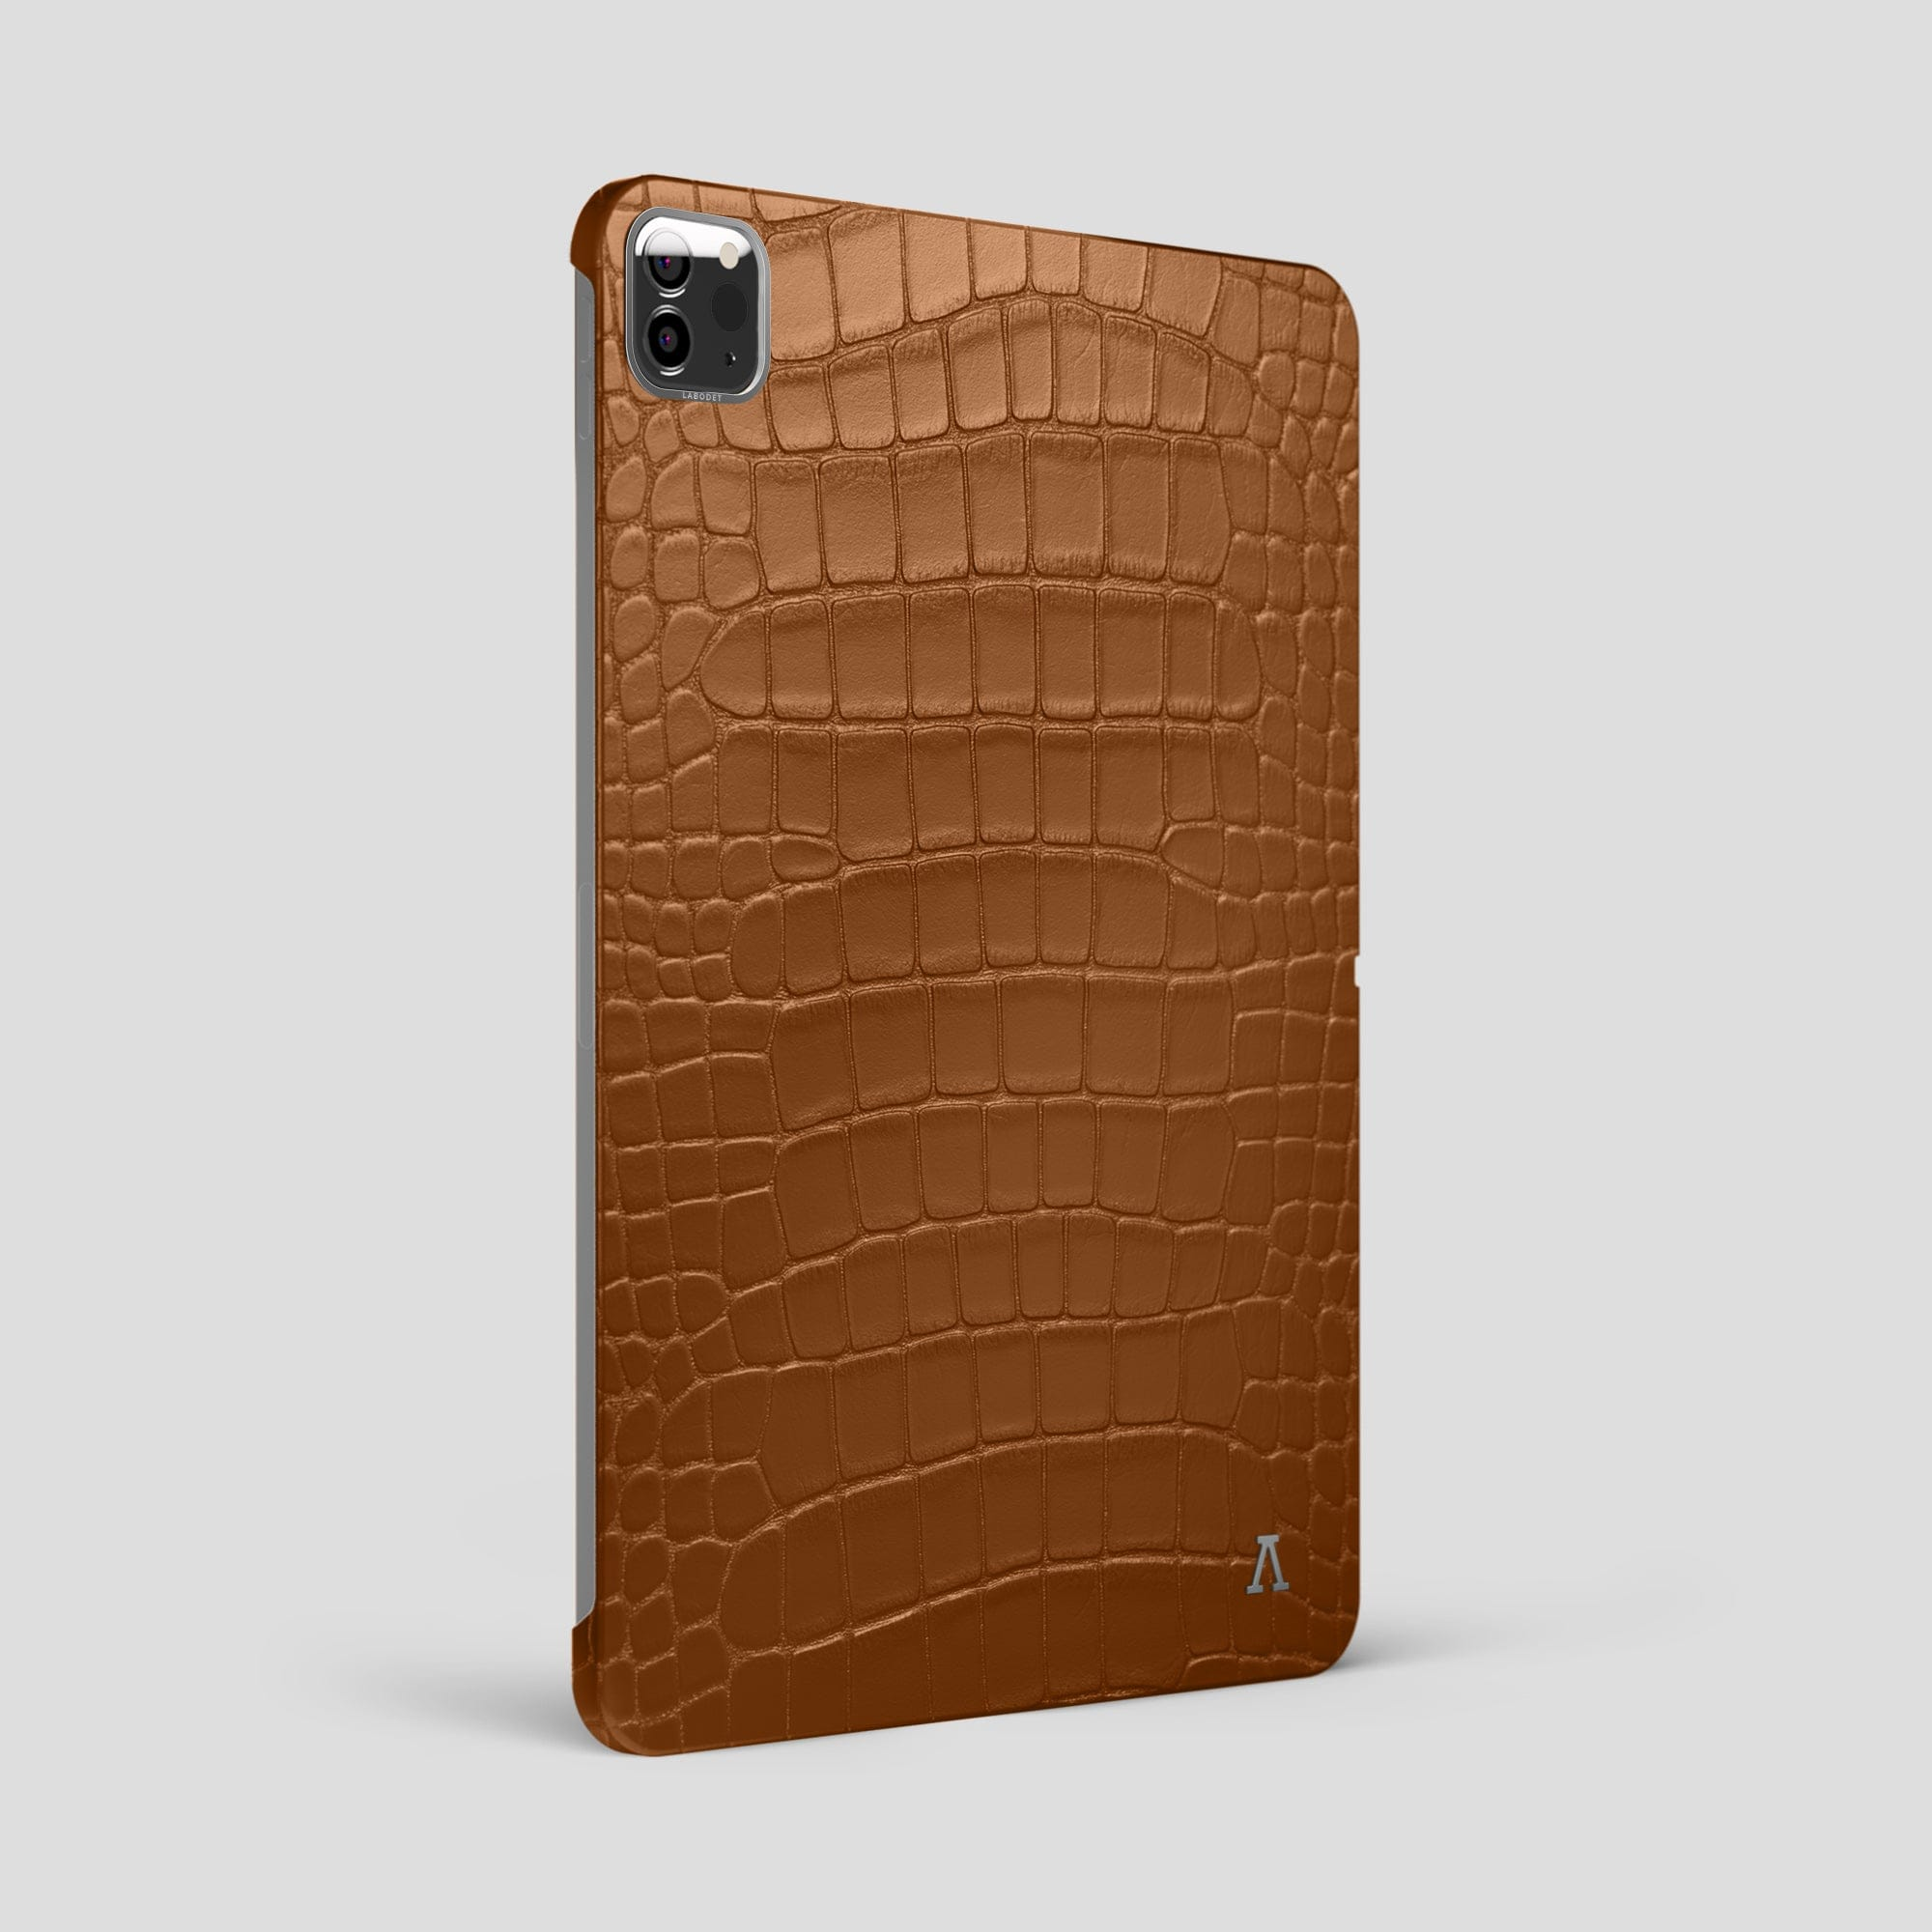 iPad Pro 12.9-inch Case Alligator